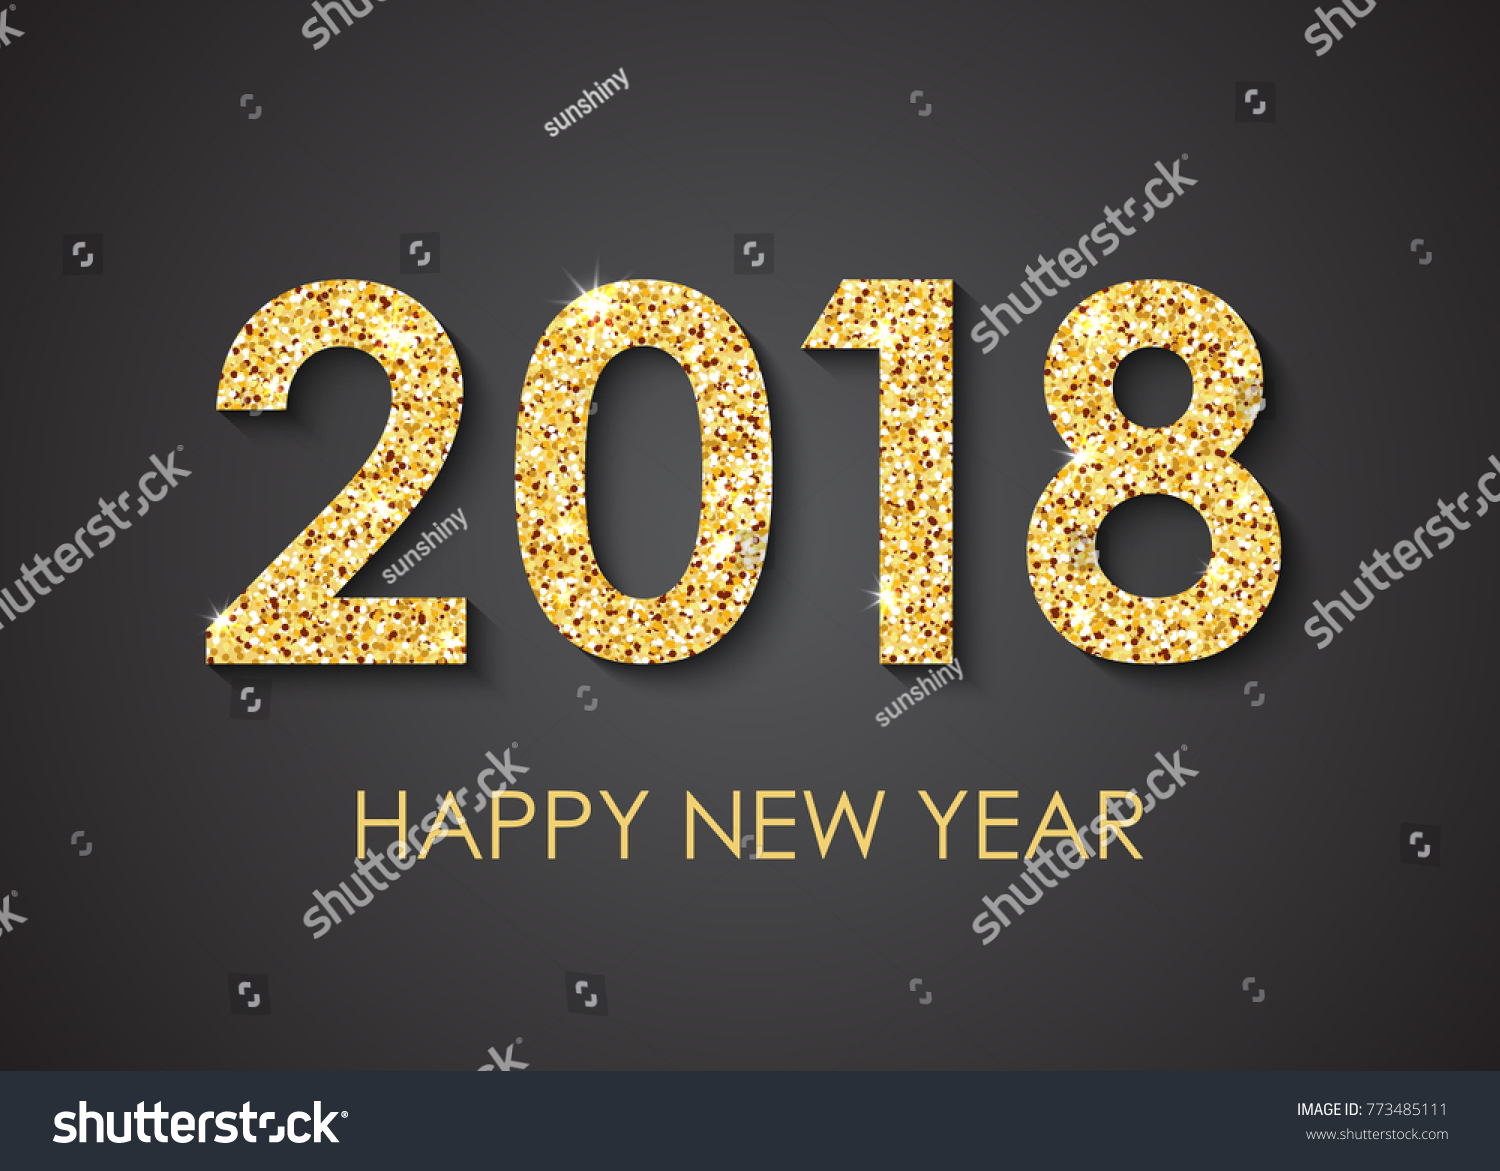 2018 happy new year text greeting stock illustration 773485111 2018 happy new year text for greeting card calendar invitation kristyandbryce Images